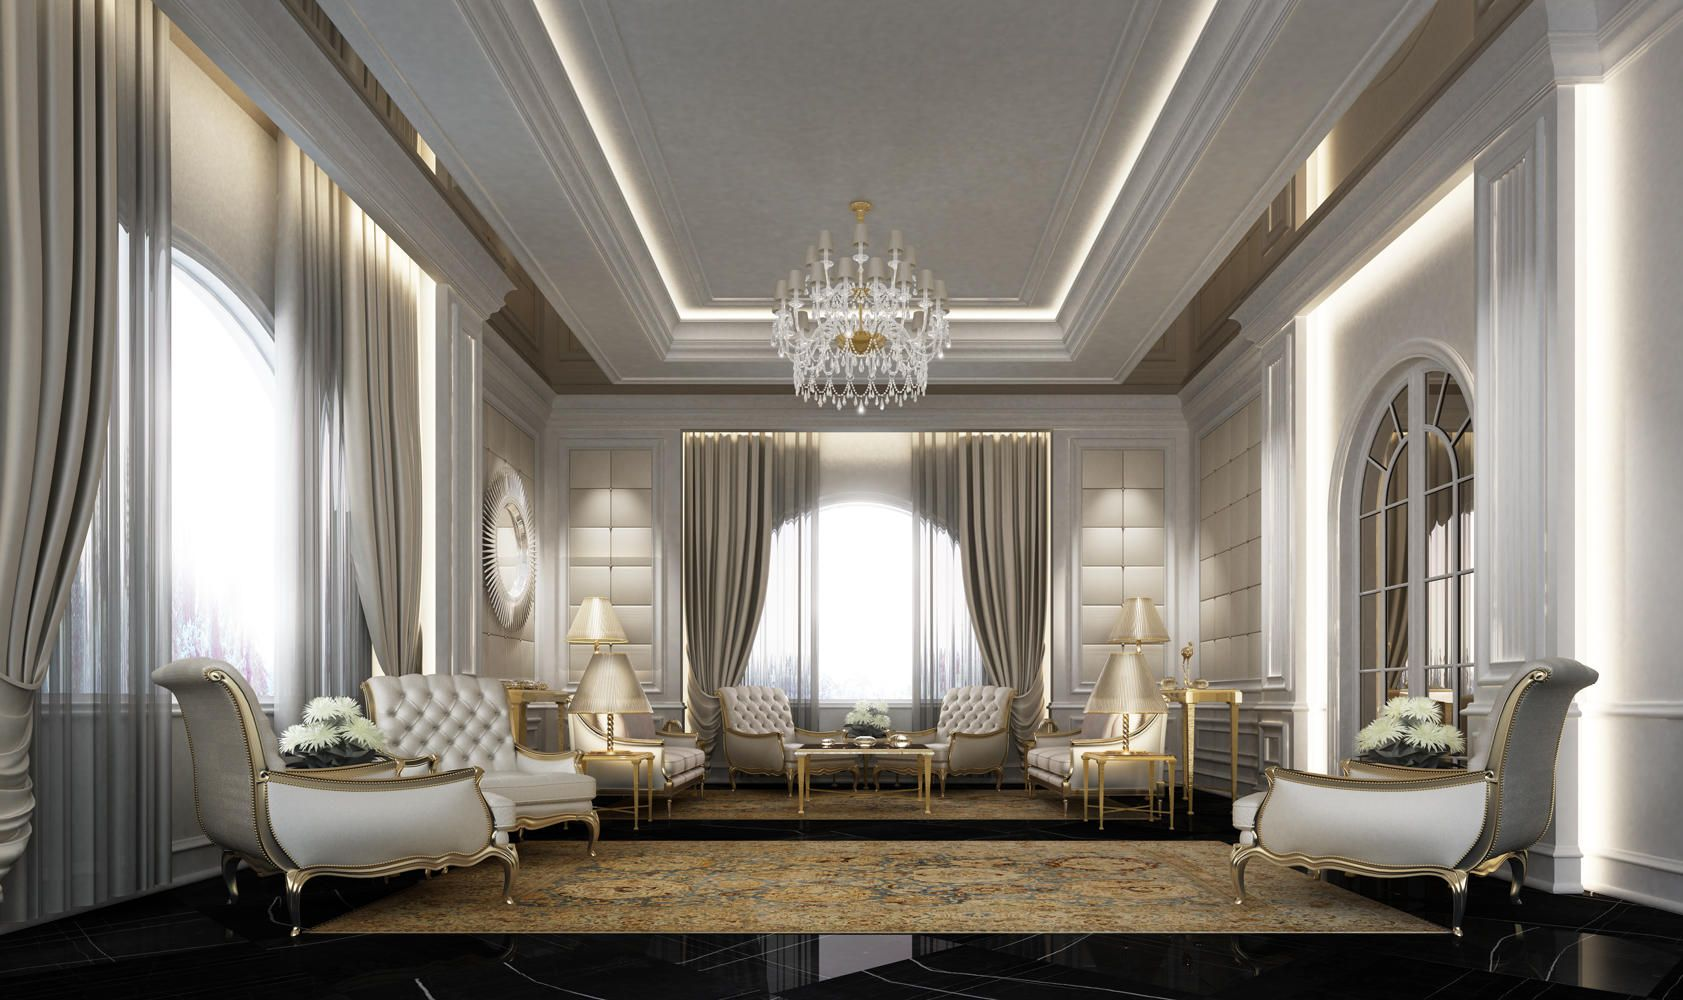 Arabic majlis designs ions design interior design for Arabic interiors decoration